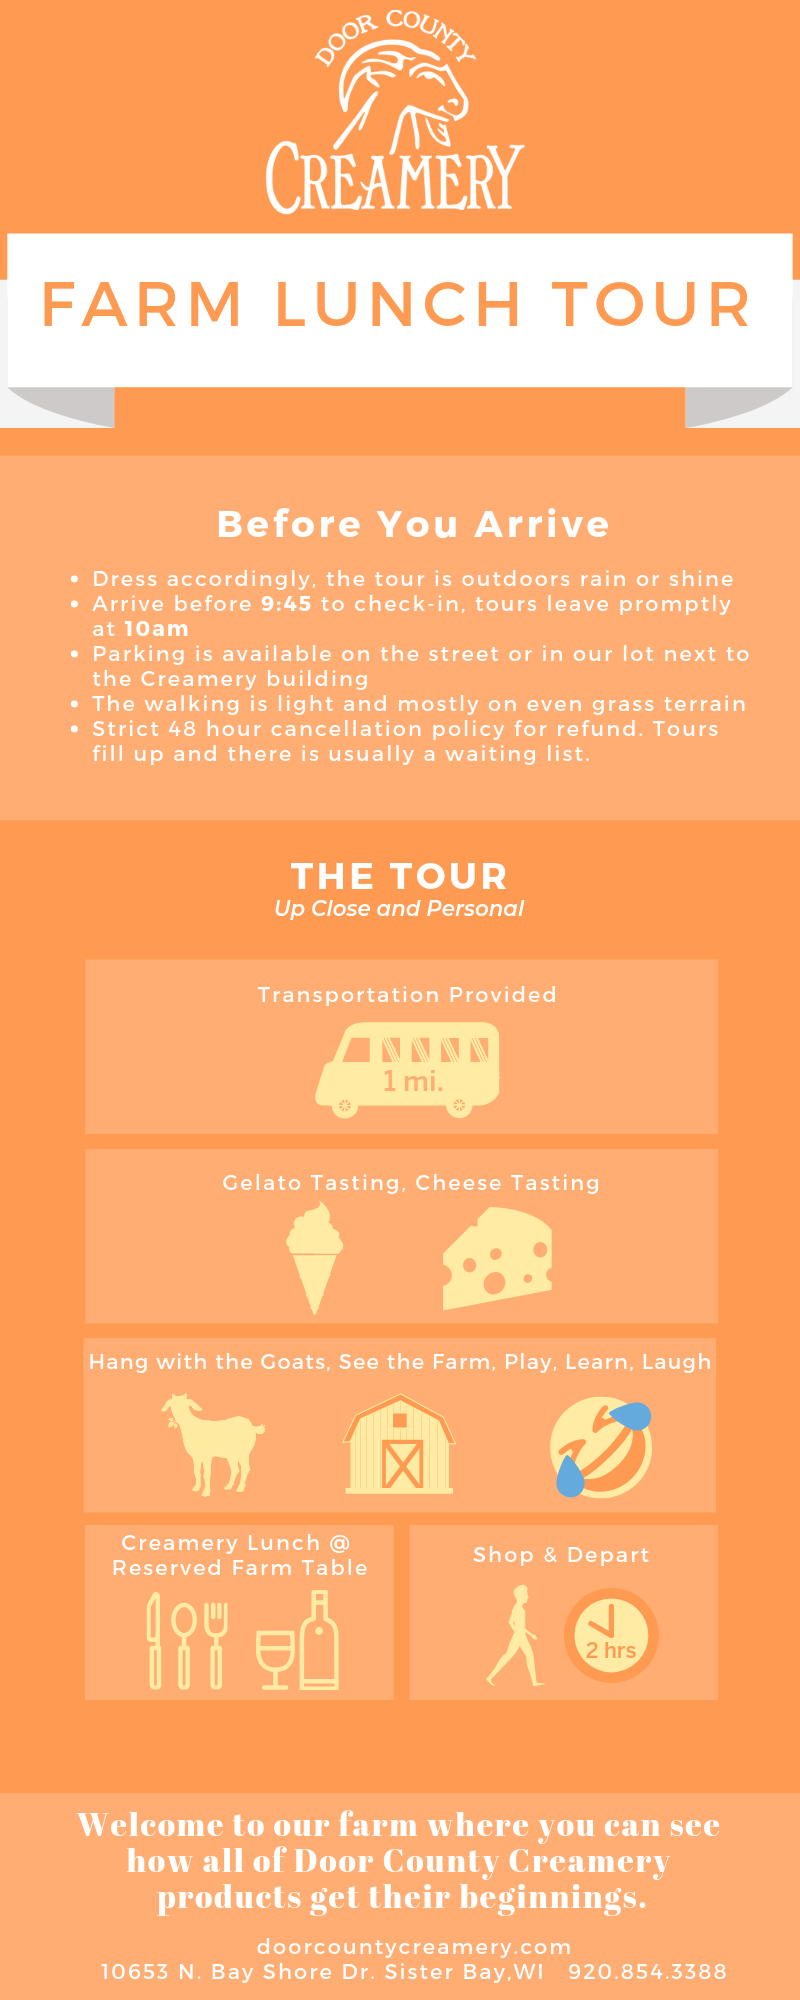 farm-tour-info.png